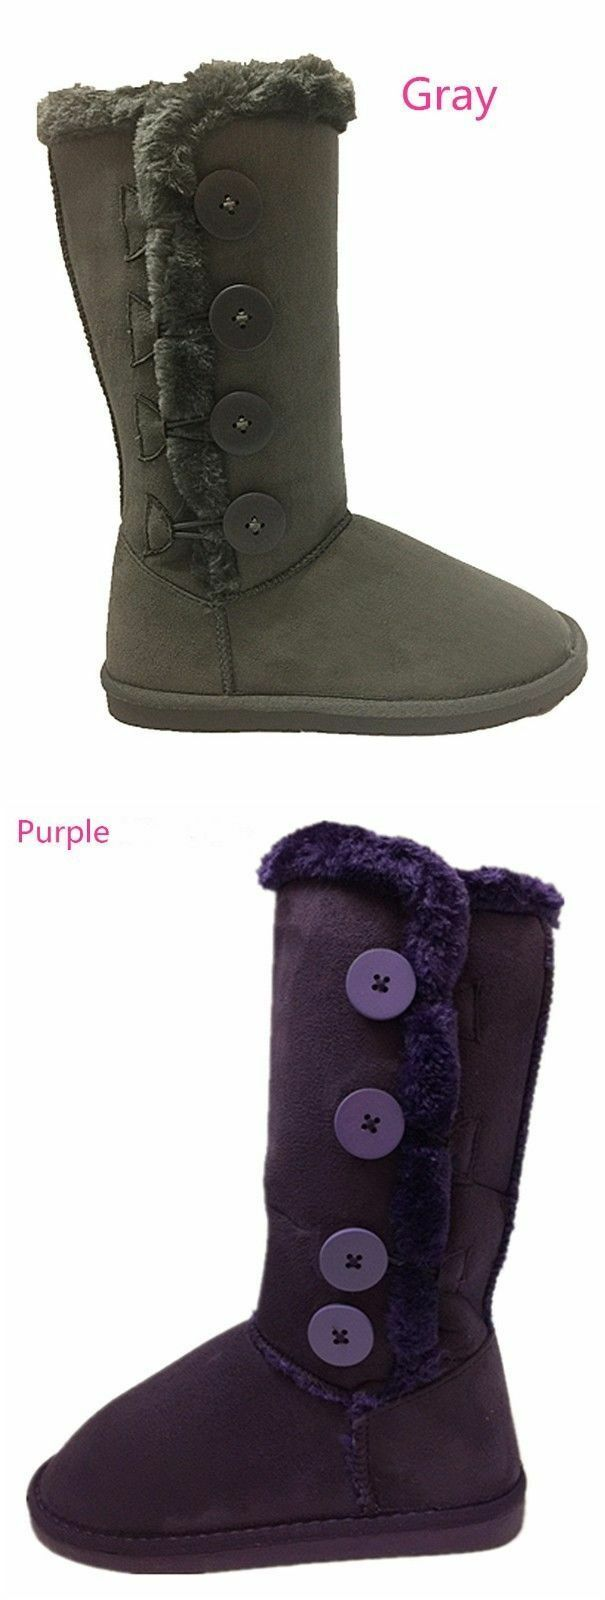 New Women's Button Fur Winter Snow Boots Faux Suede Calf Warm Flat Shoes